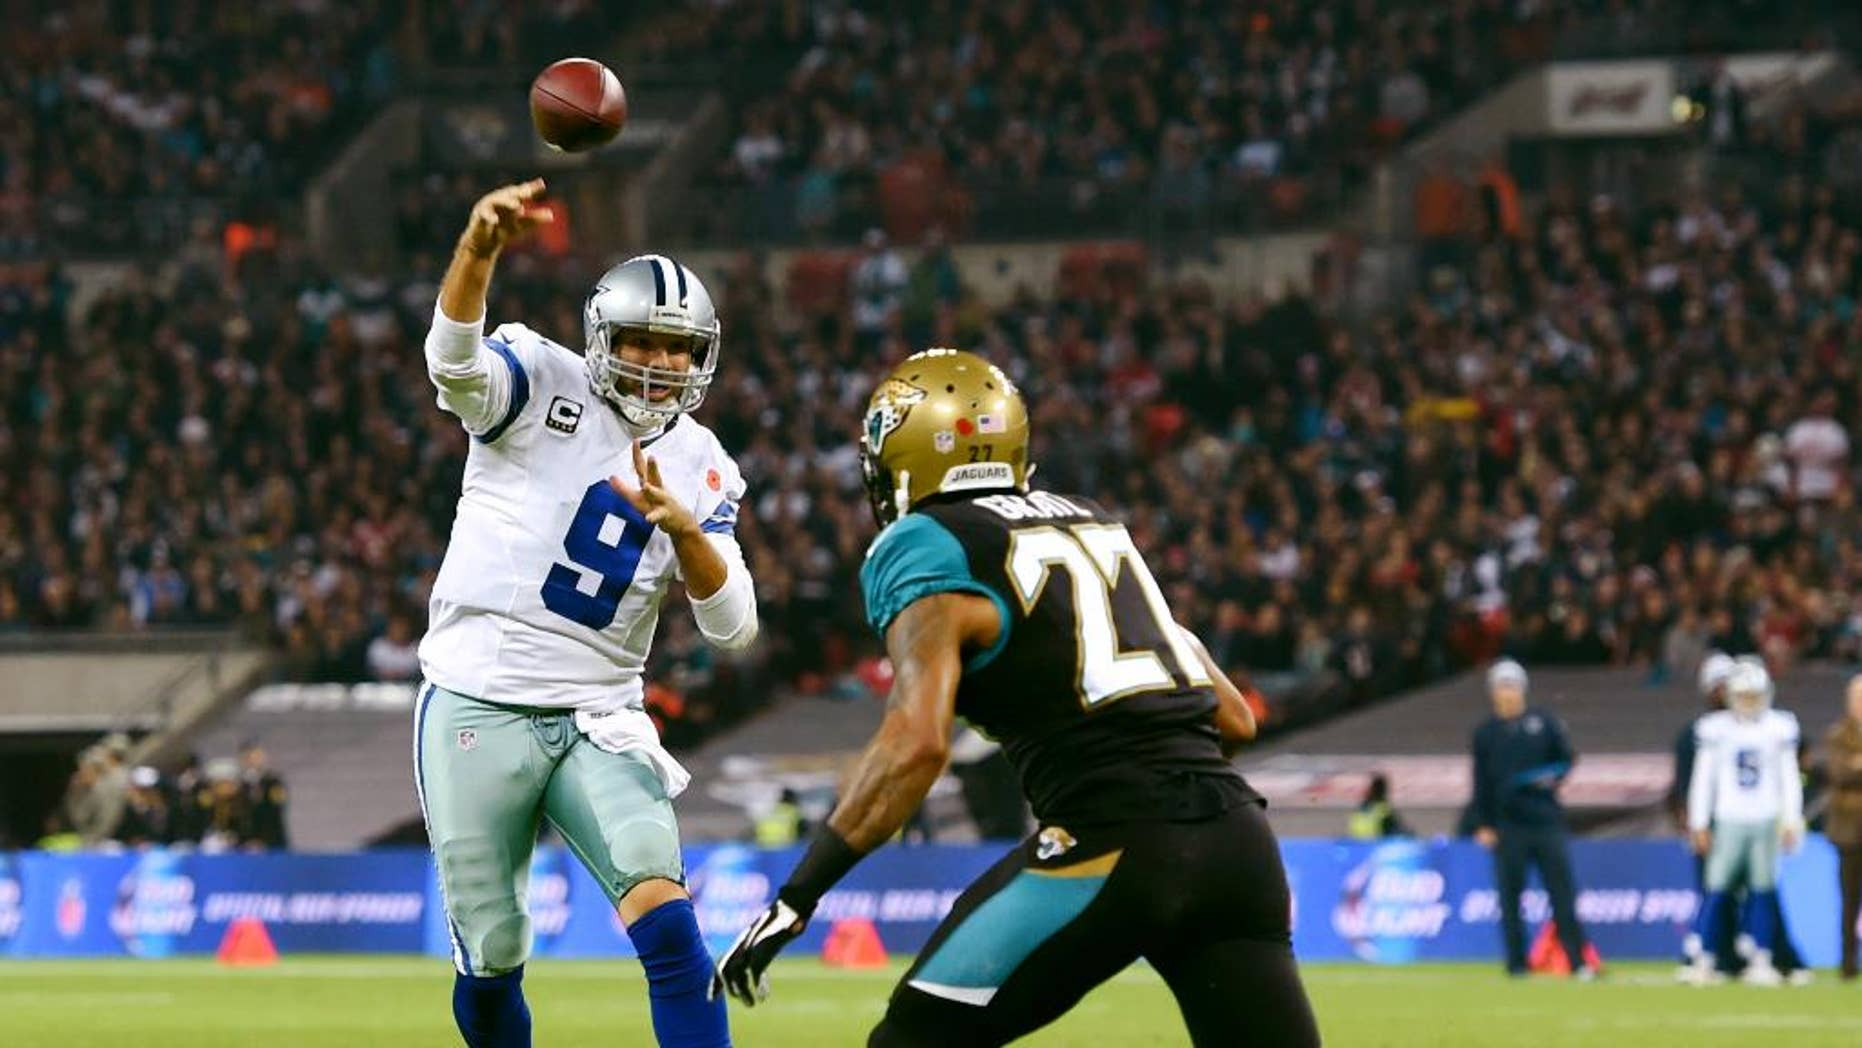 Jacksonville Jaguars wide receiver Cecil Shorts (84) is pursued by Dallas Cowboys defensive back Sterling Moore (26) and free safety J.J. Wilcox (27)  during the first half of an NFL football game at Wembley Stadium, London, Sunday, Nov. 9, 2014. (AP Photo/Tim Ireland)